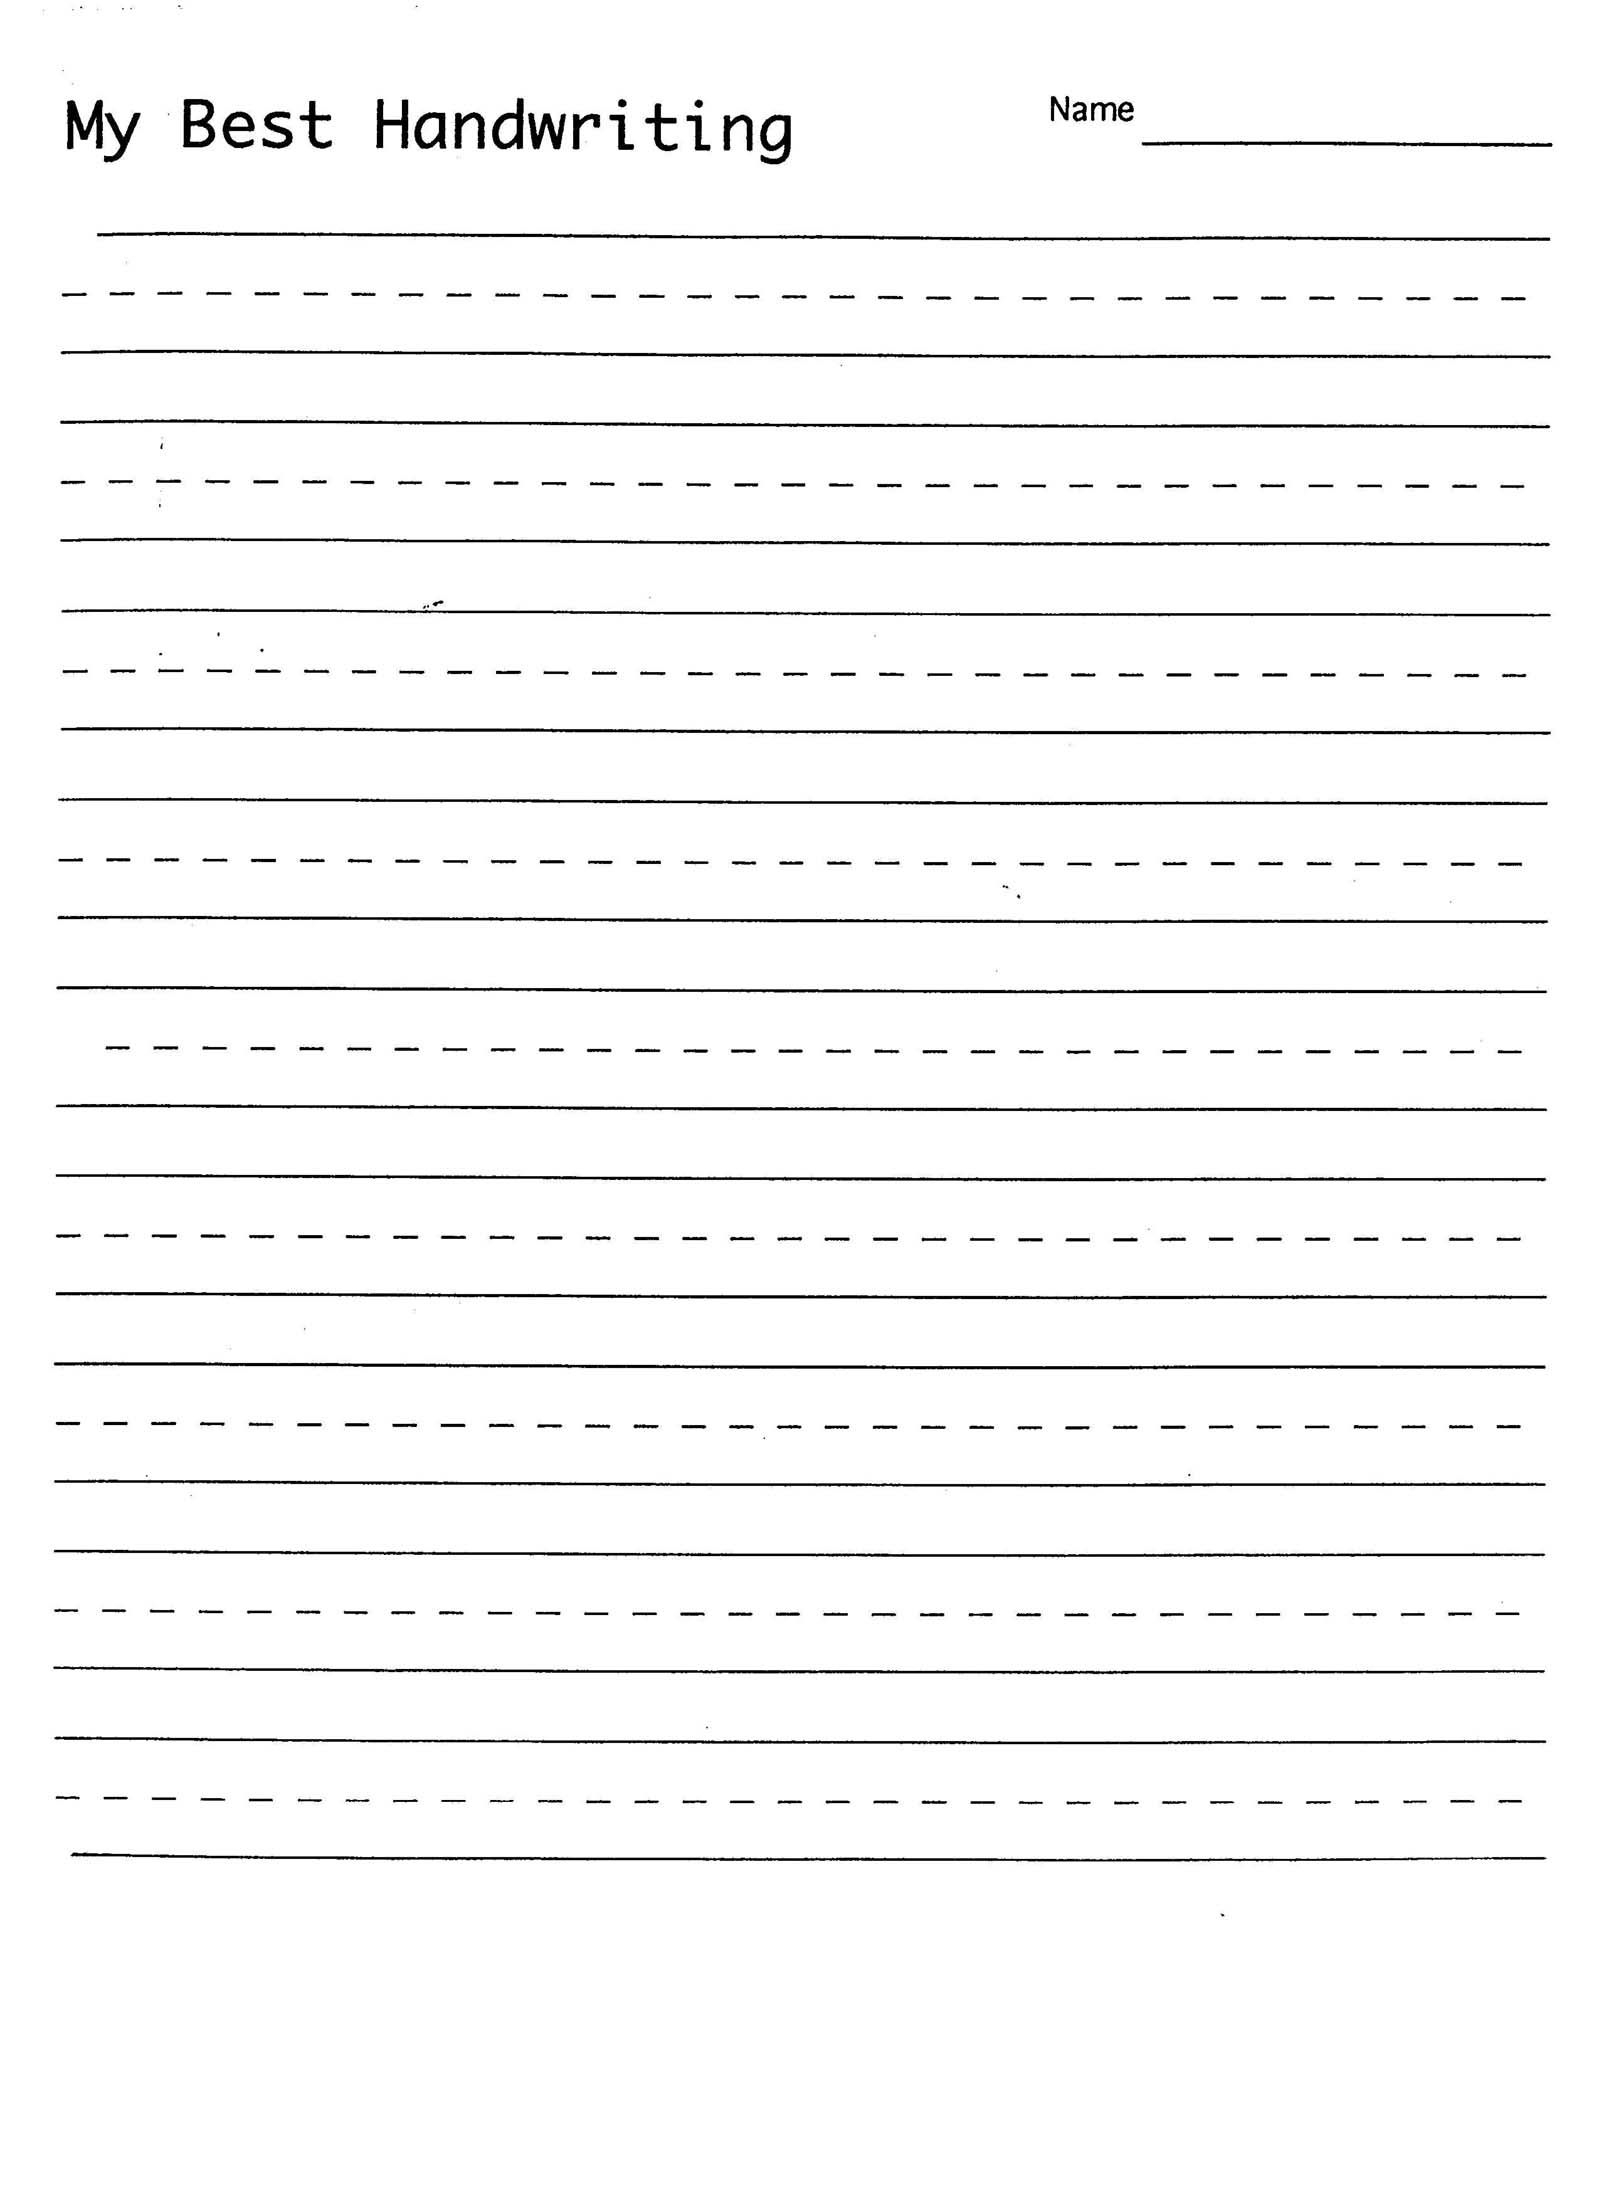 Handwriting Practice Sheet | 1St Grade Handwriting | Writing | Printable Writing Worksheets